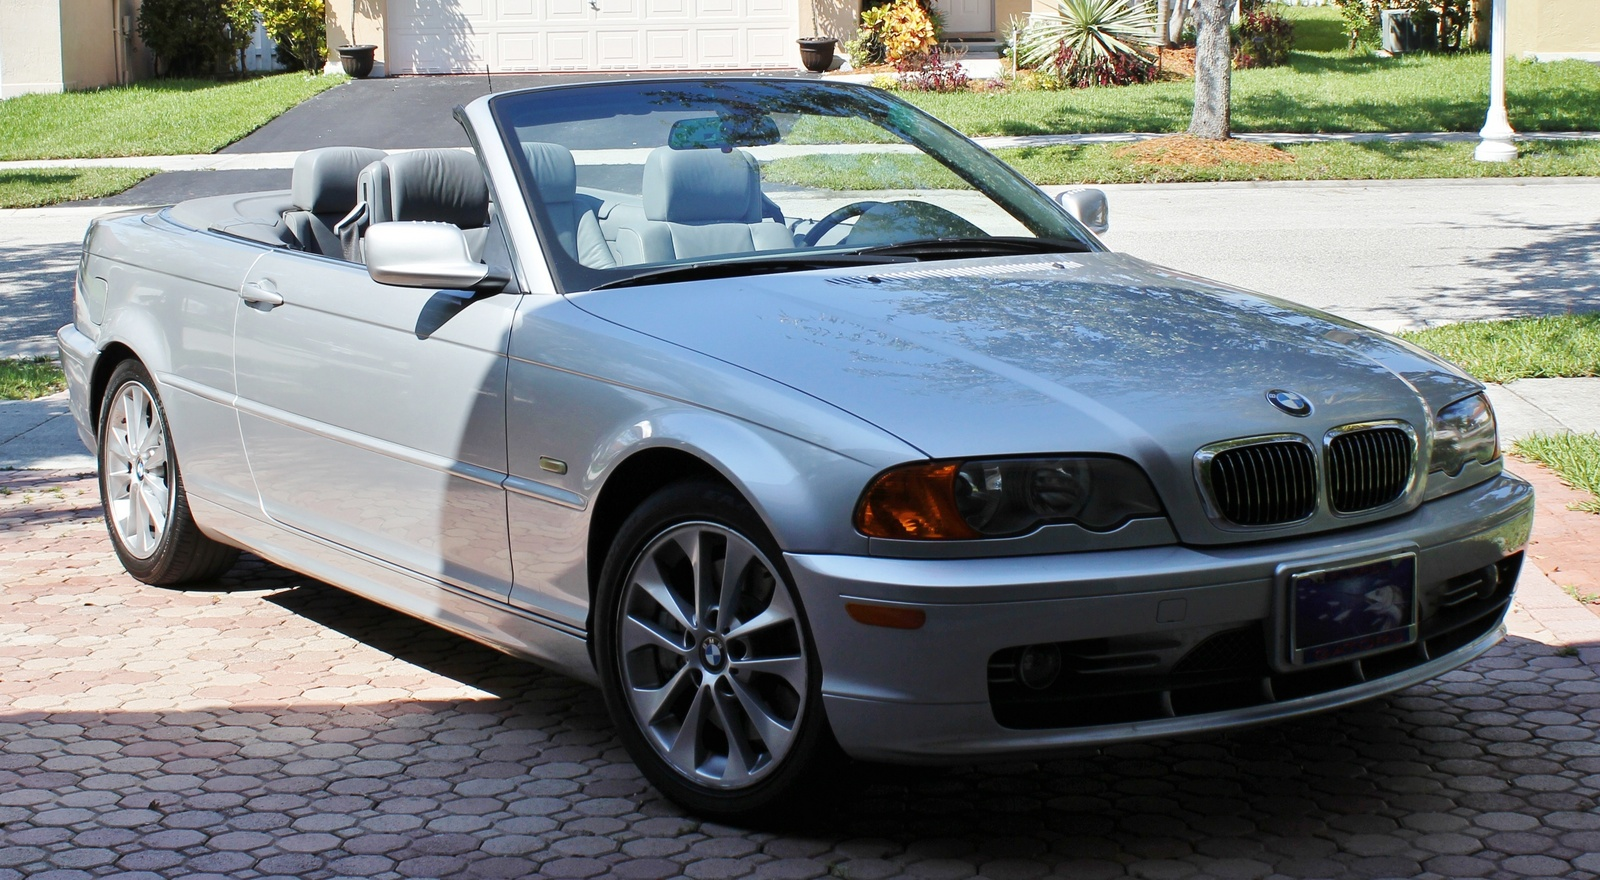 BMW 3 series 330Ci 2002 photo - 2